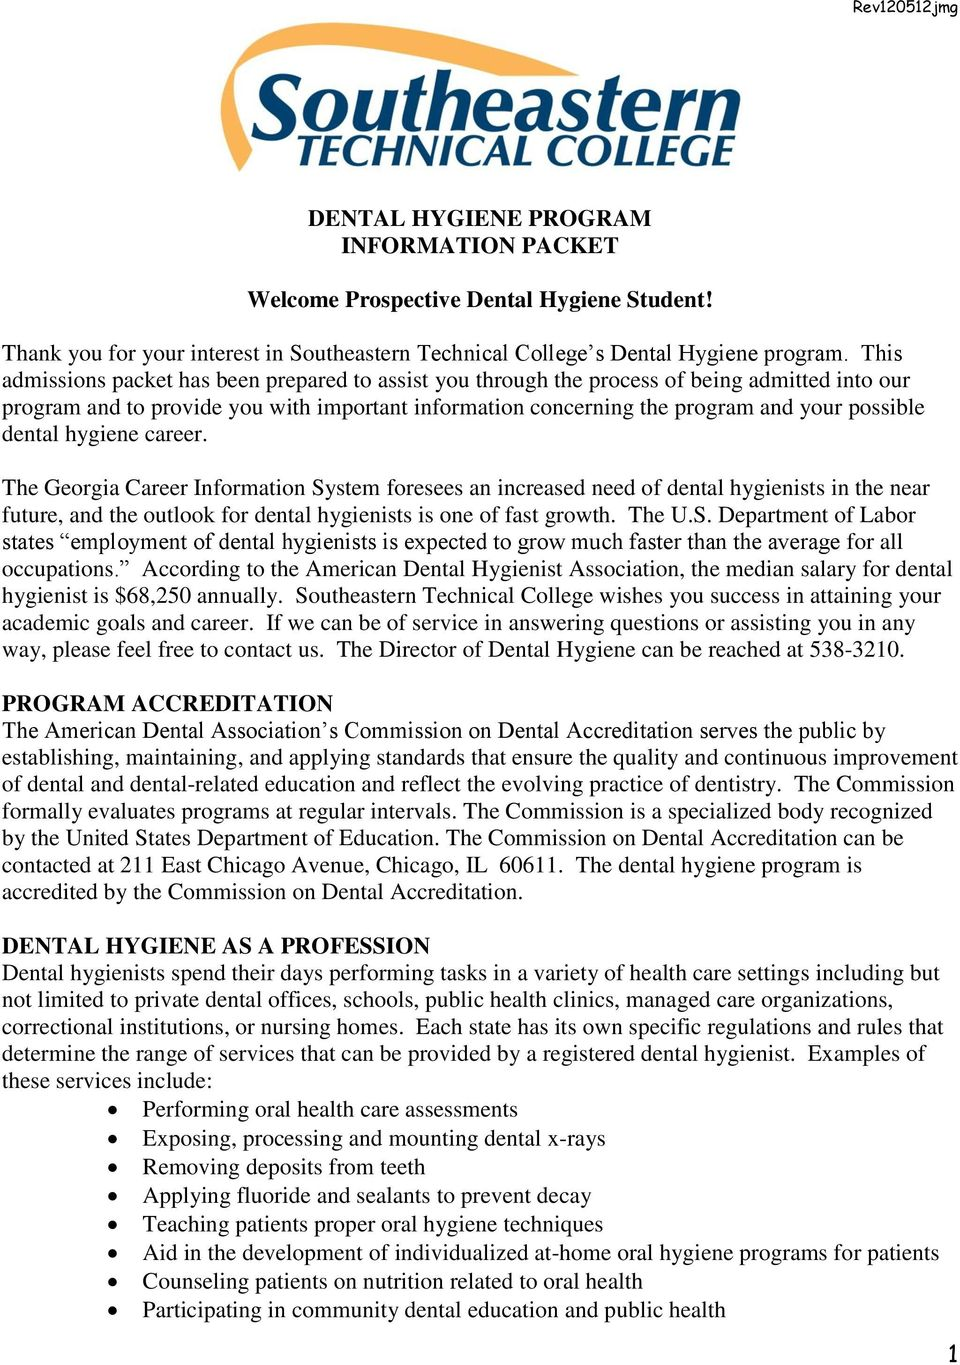 dental hygiene career. The Georgia Career Information System foresees an increased need of dental hygienists in the near future, and the outlook for dental hygienists is one of fast growth. The U.S. Department of Labor states employment of dental hygienists is expected to grow much faster than the average for all occupations.